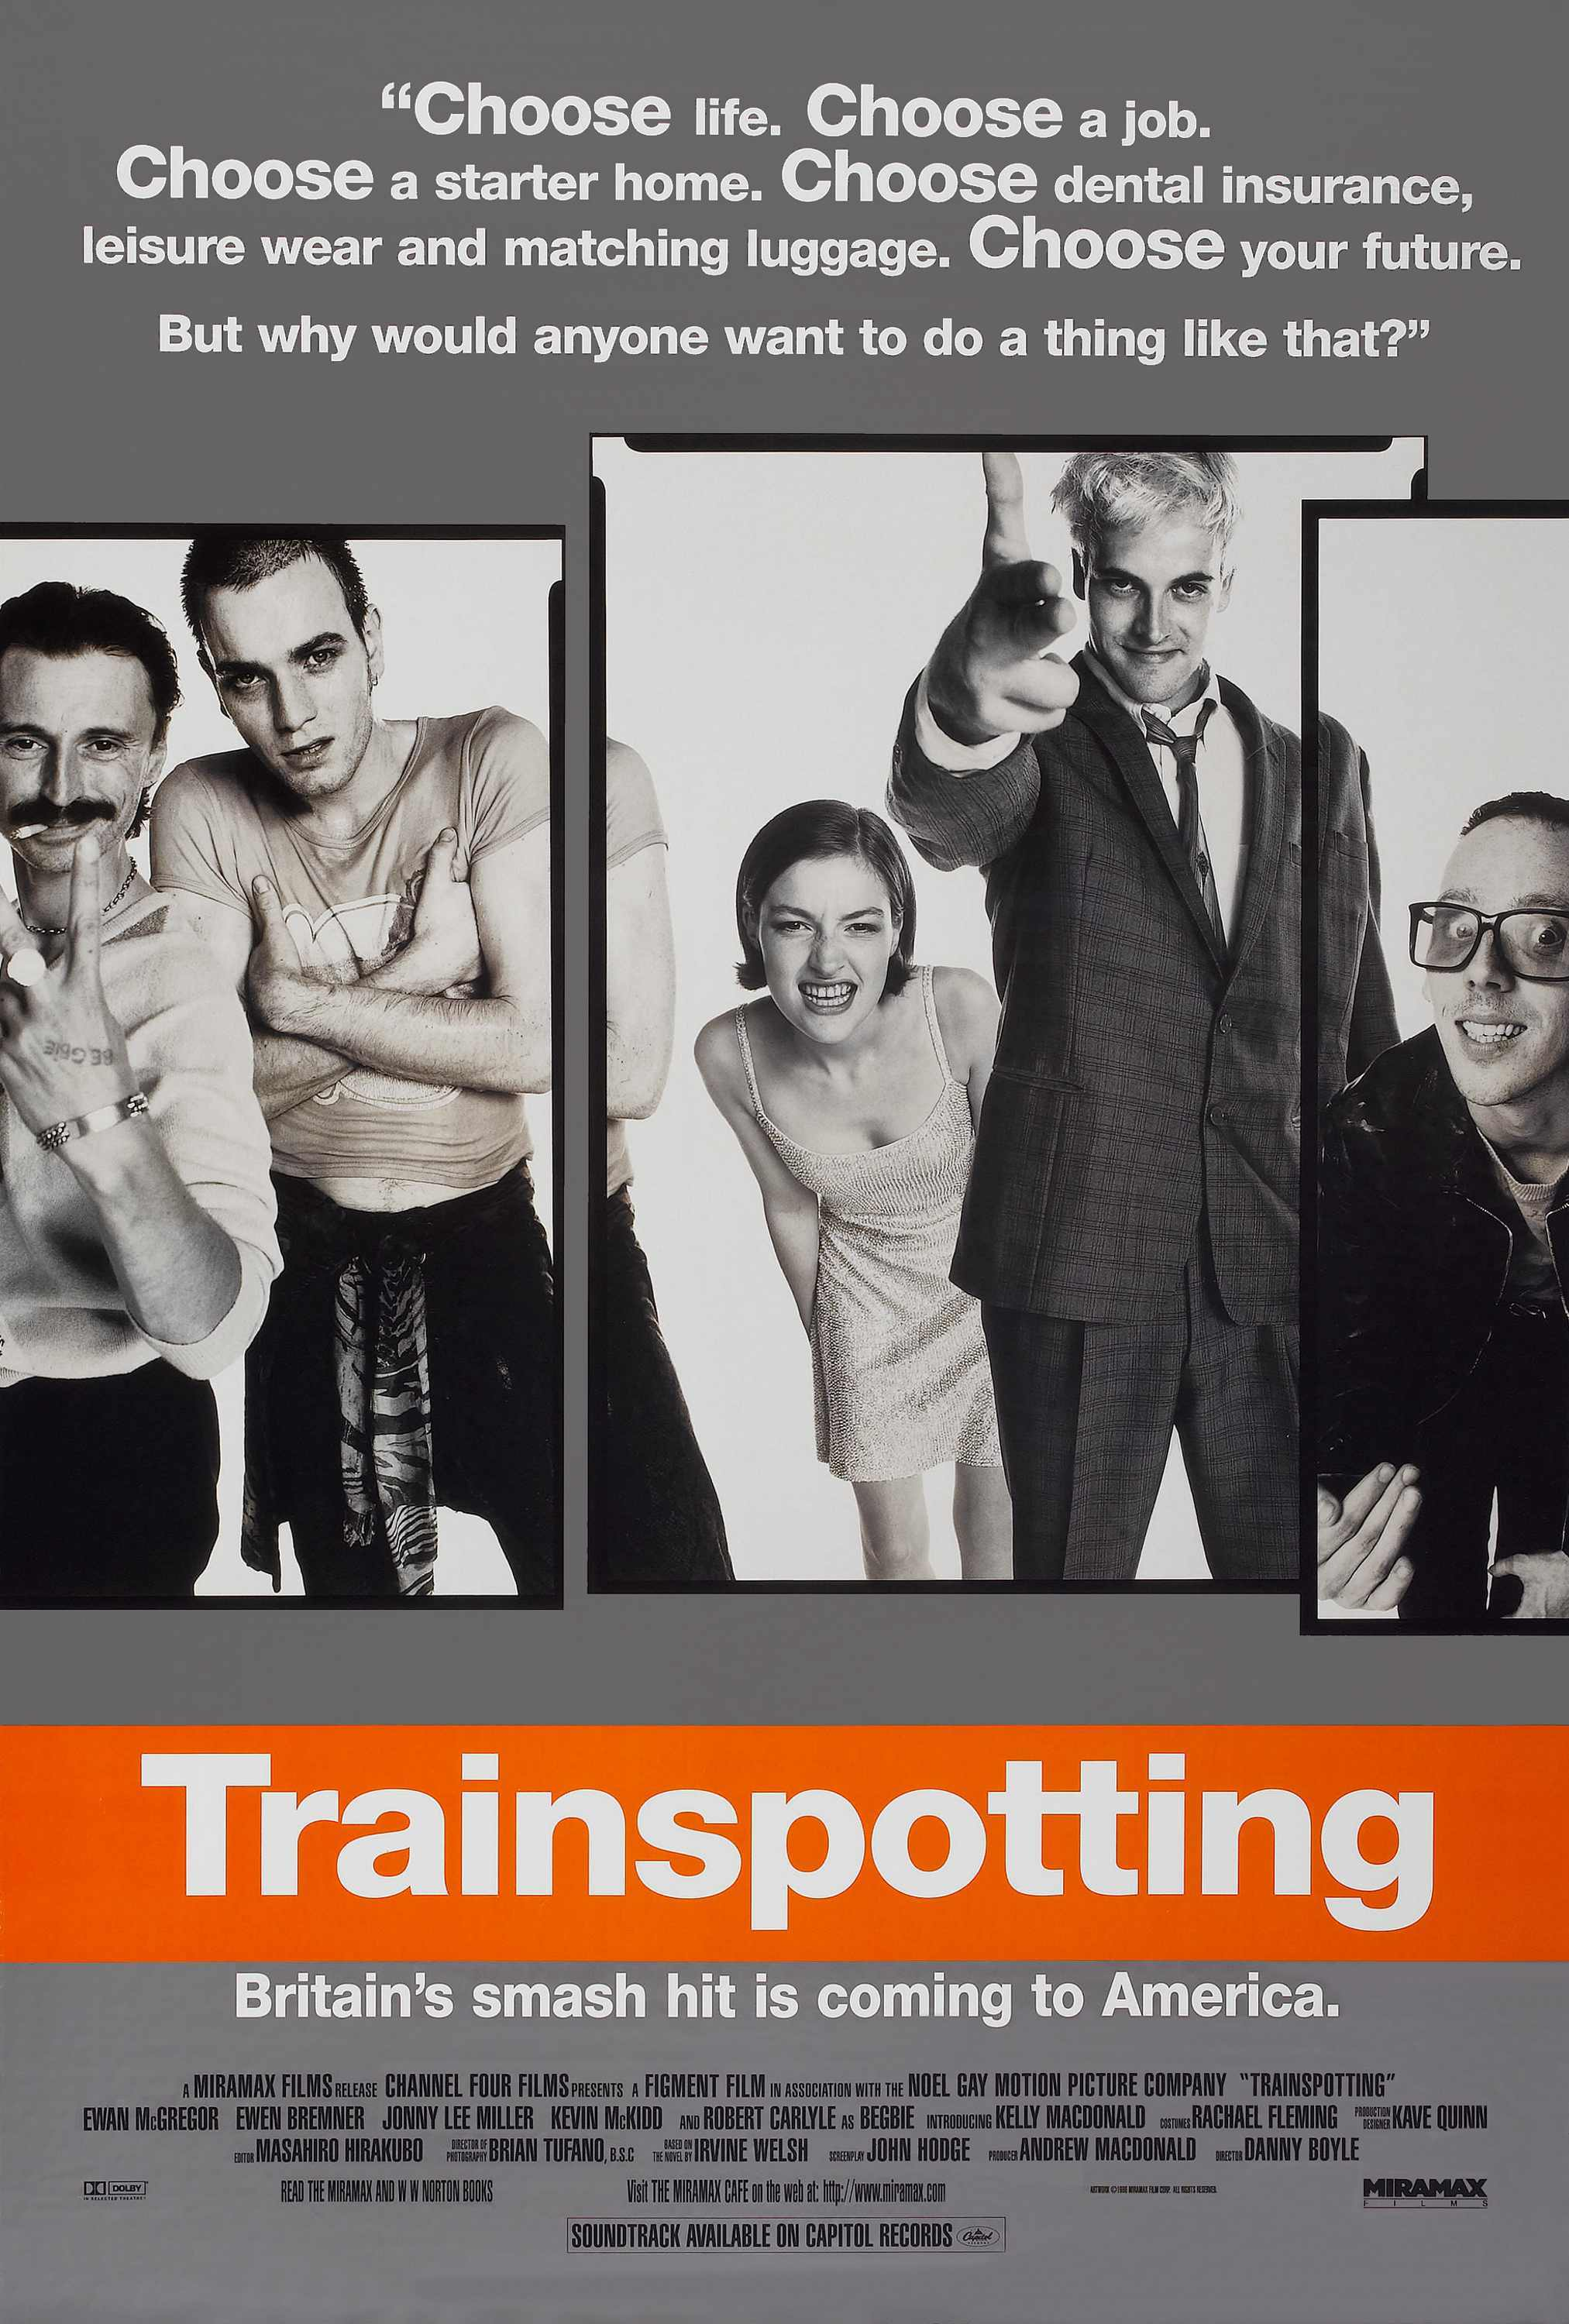 Trainspotting ewan mcgregor selective HD Wallpaper